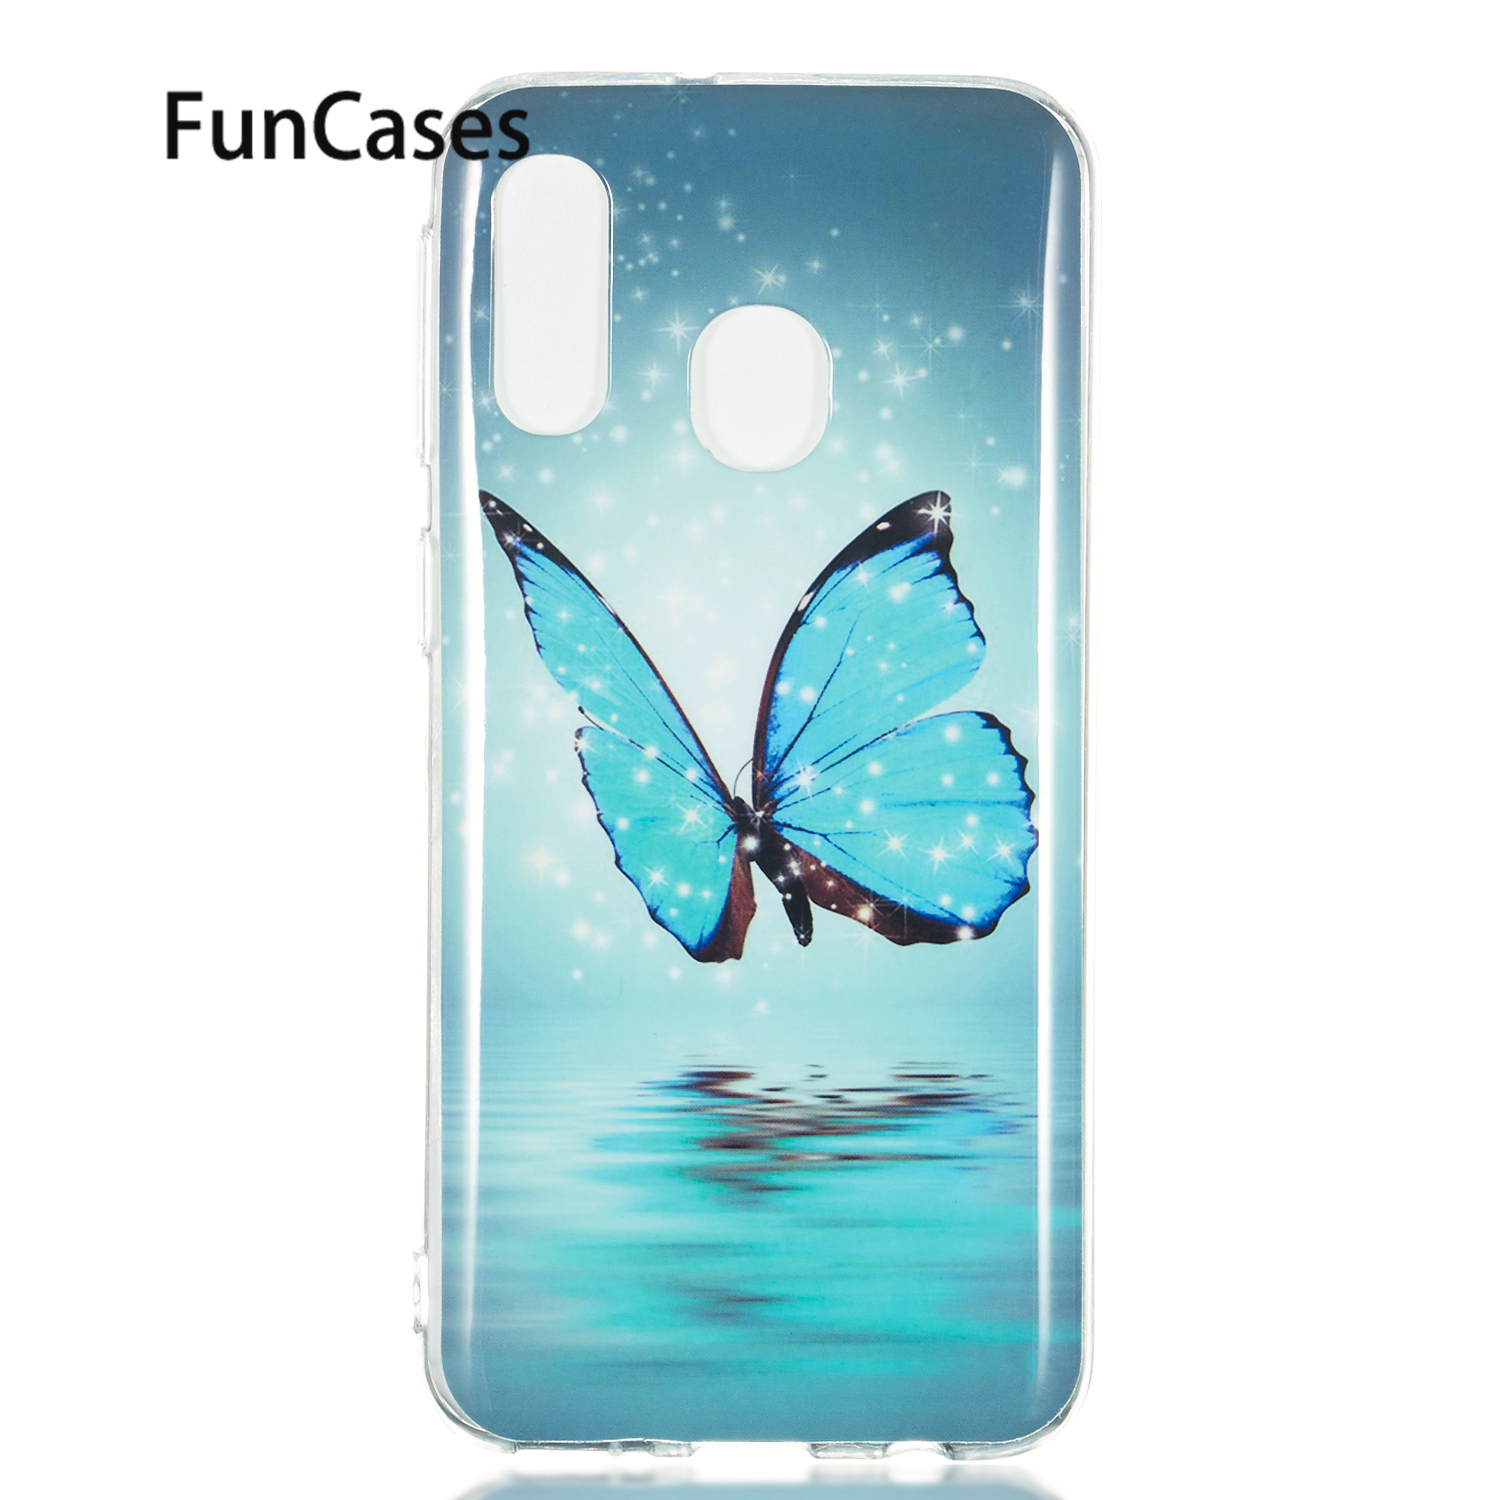 Fitted Case For Samsung A8S Soft Silicone Cover sFor Samsung Galaxy A40 A50 A6 2018 Plus A7 A750 A70 A9 J2 Core J3 J4 J6 J7 <font><b>J8</b></font> image